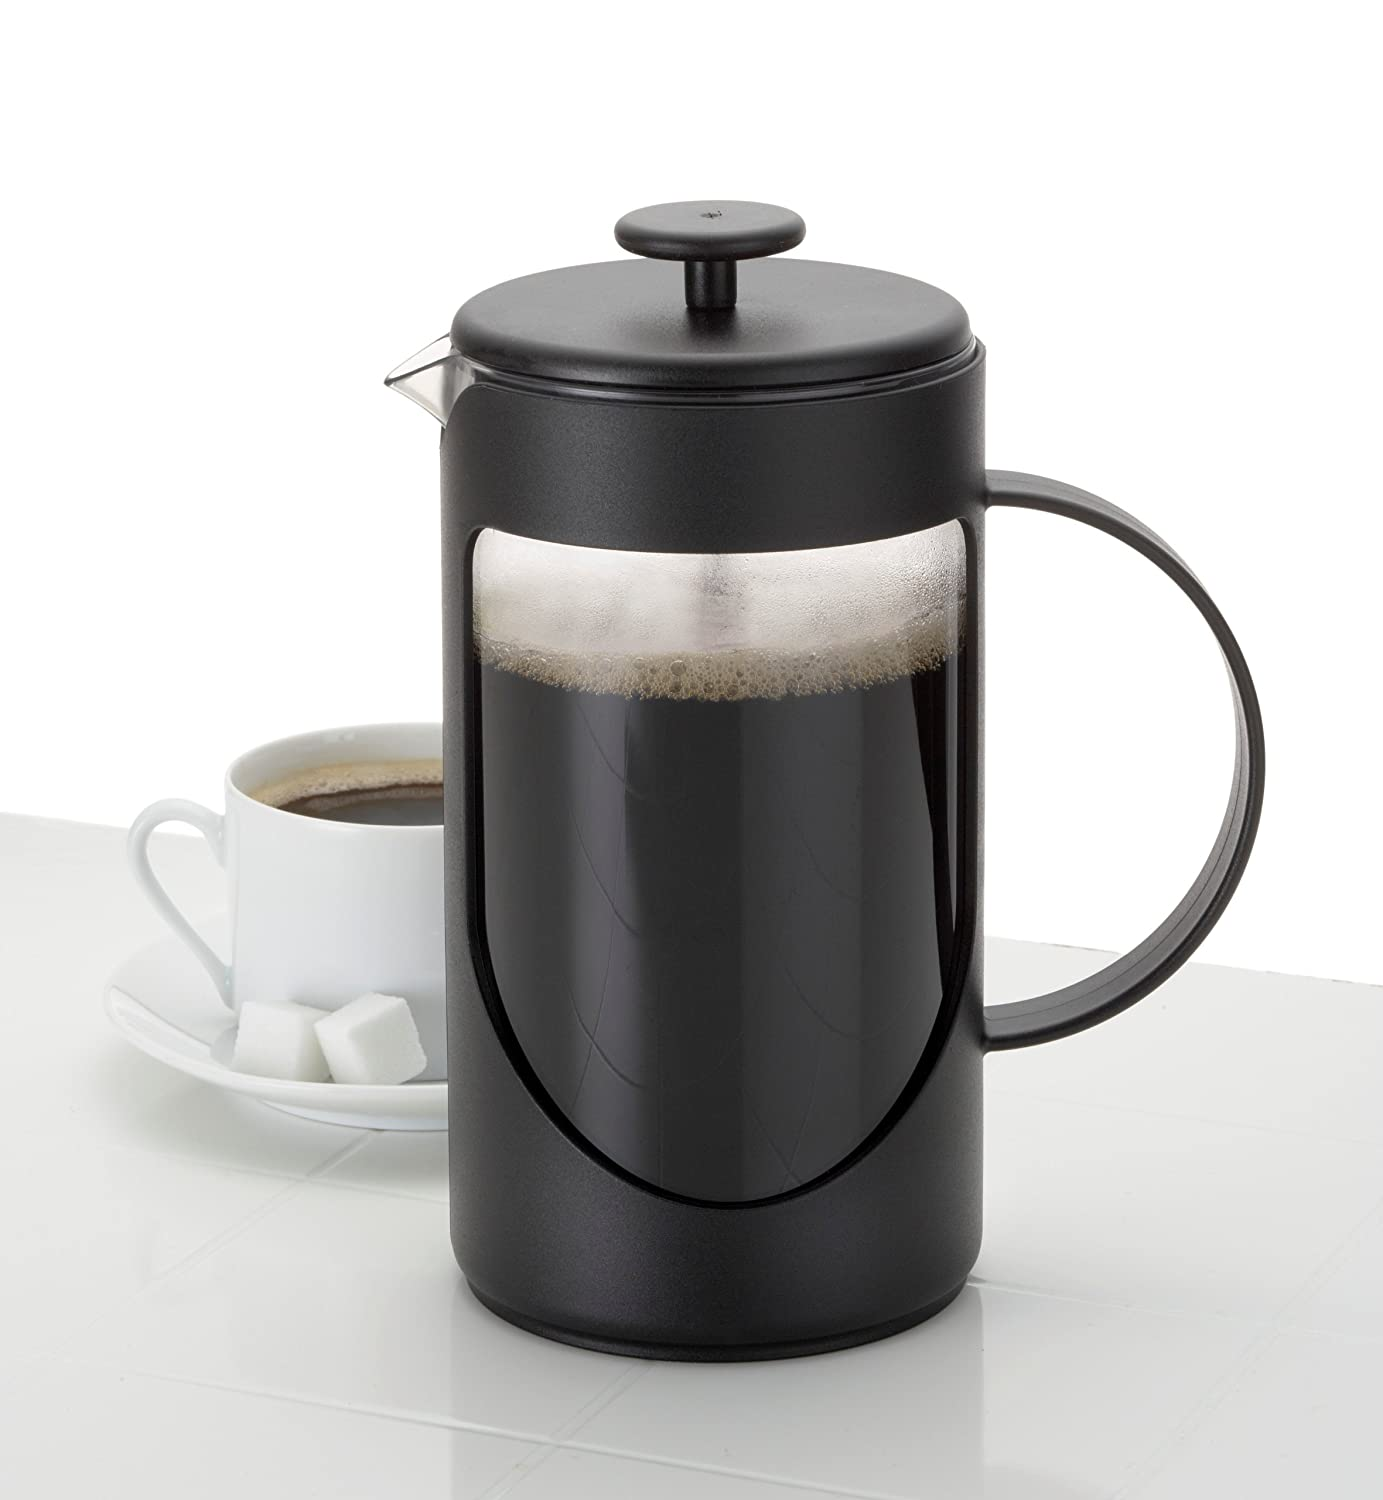 Bed bath beyond french press - Amazon Com Bonjour Coffee Unbreakable Plastic French Press 33 8 Ounce Ami Matin Tm Black Non Breakable French Press Kitchen Dining